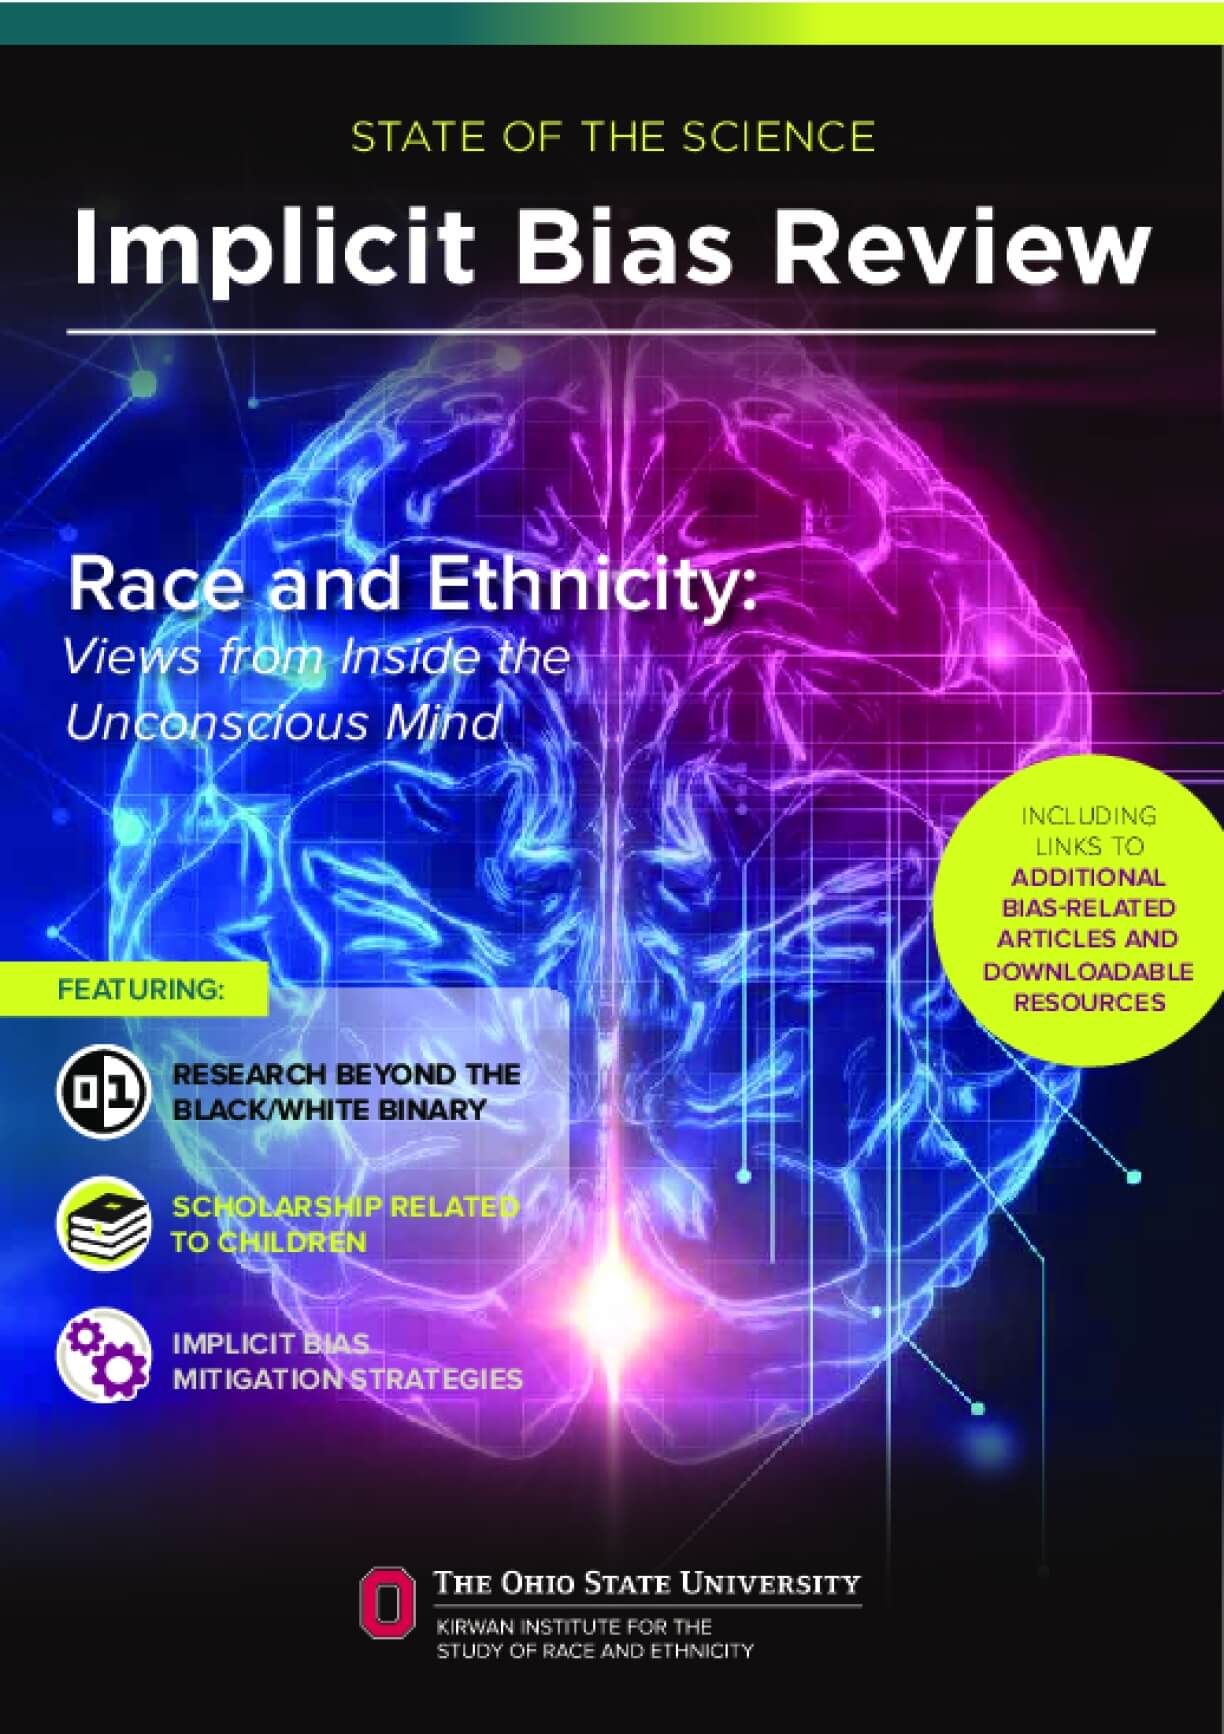 State of the Science: Implicit Bias Review 2017